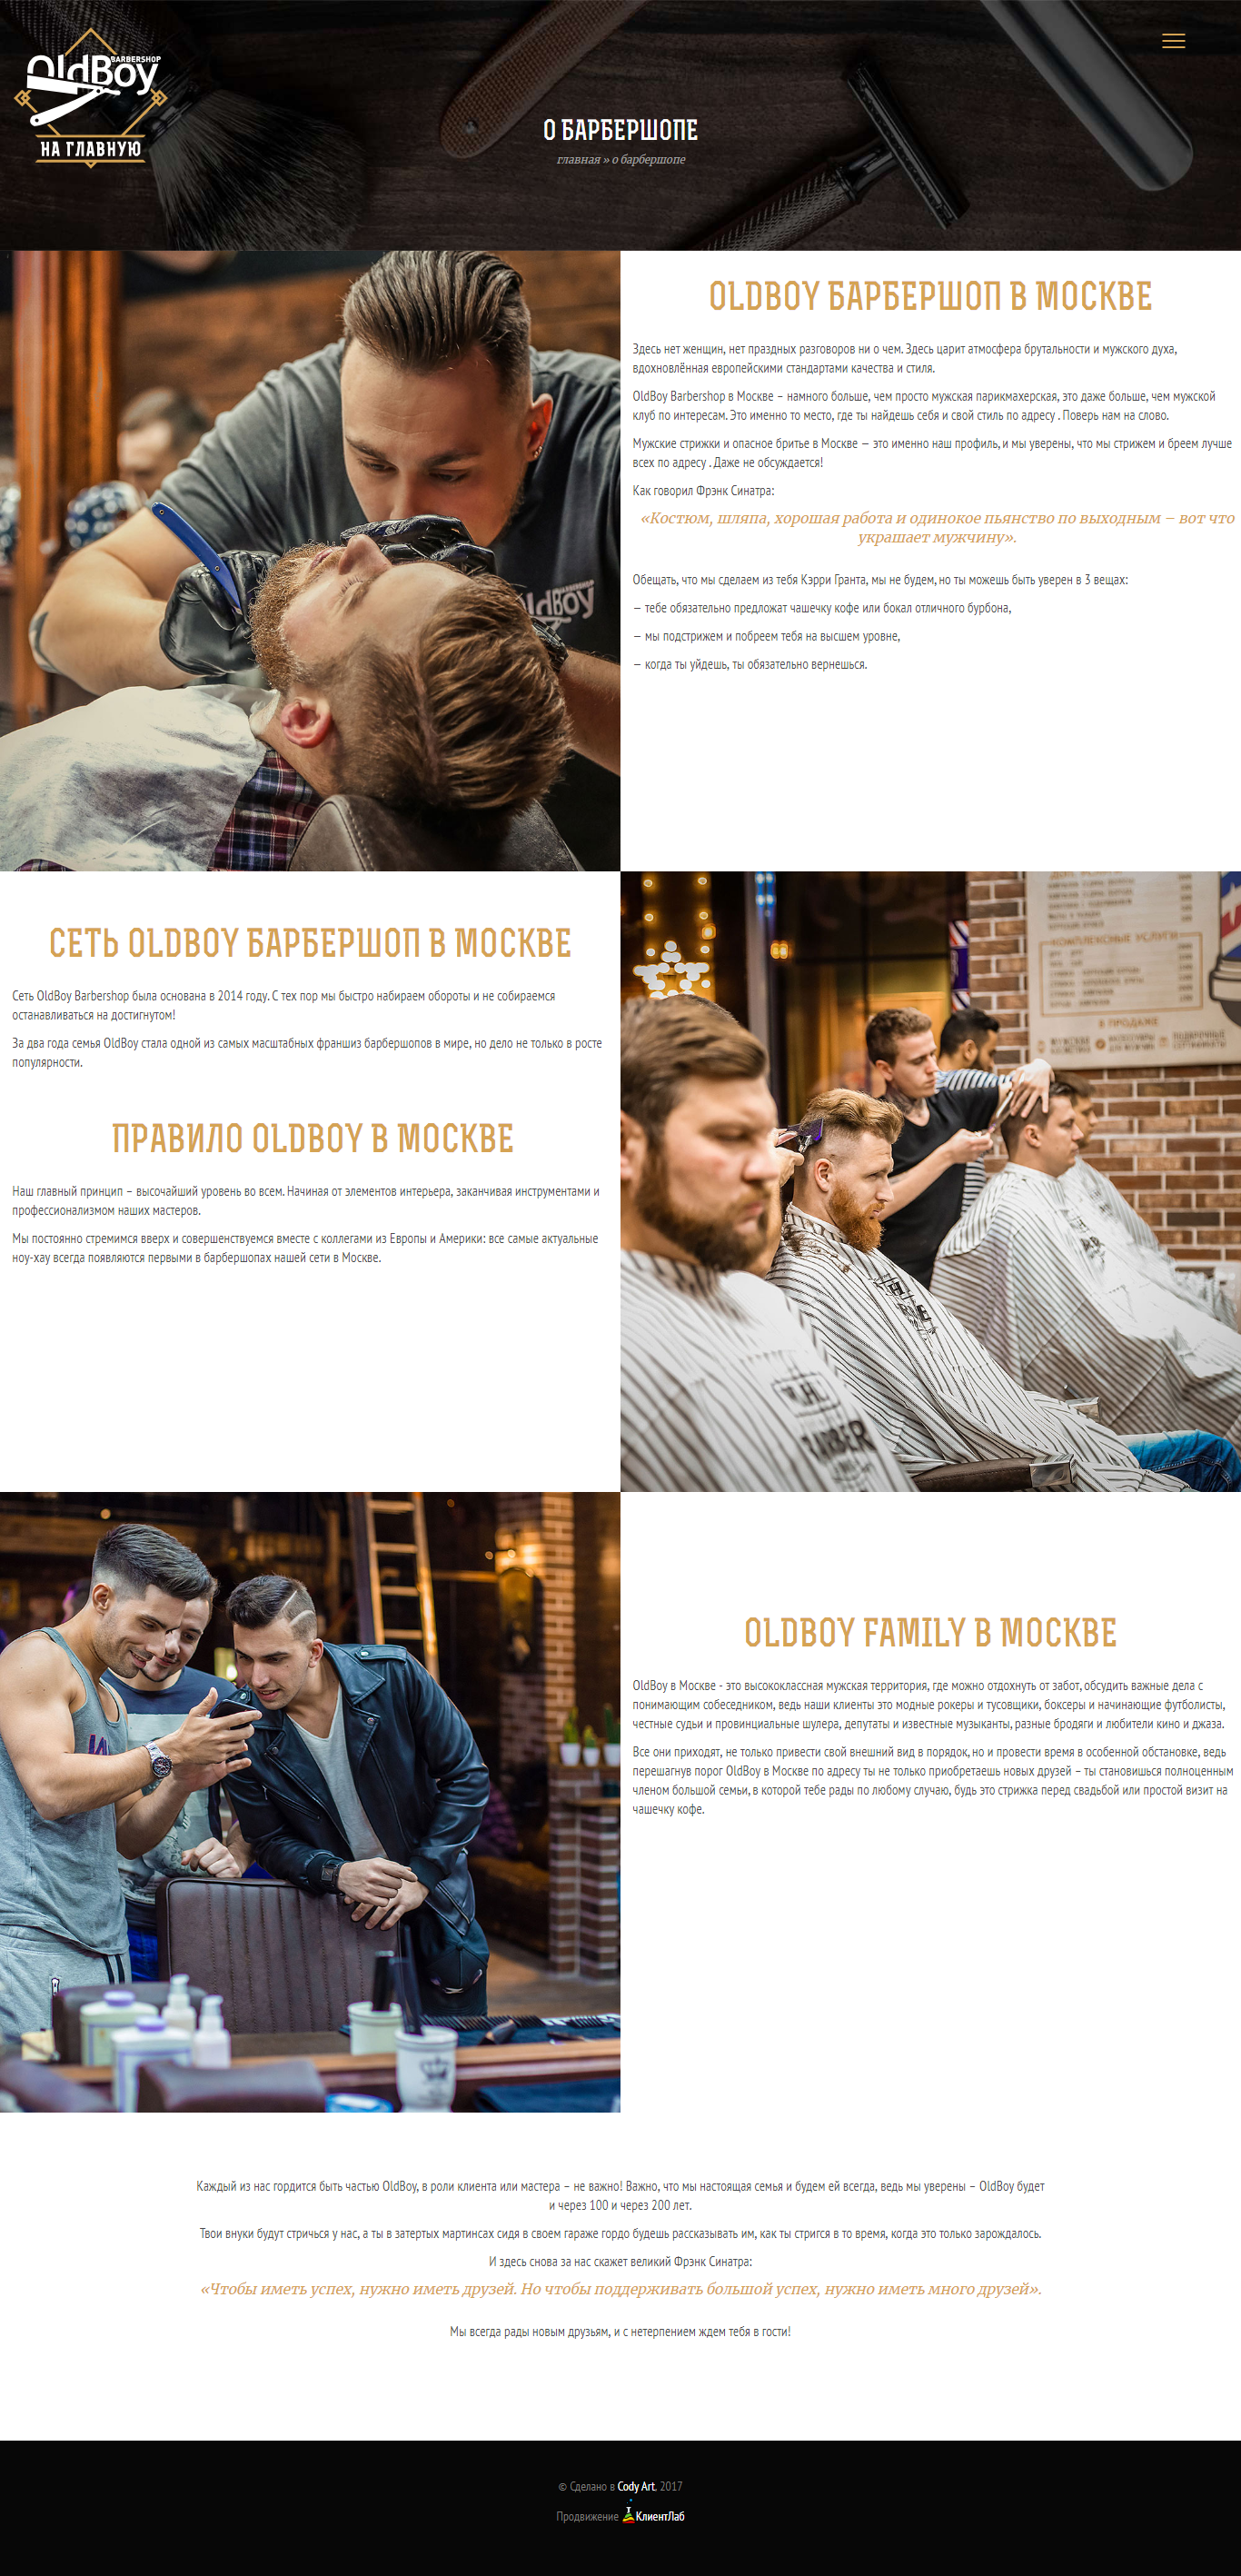 Website: https://oldboybarbershop.com/moscow/about (currently unavailable… sorry to see it go -> but check out the 404 visuals). Date of access: 06/09/2018